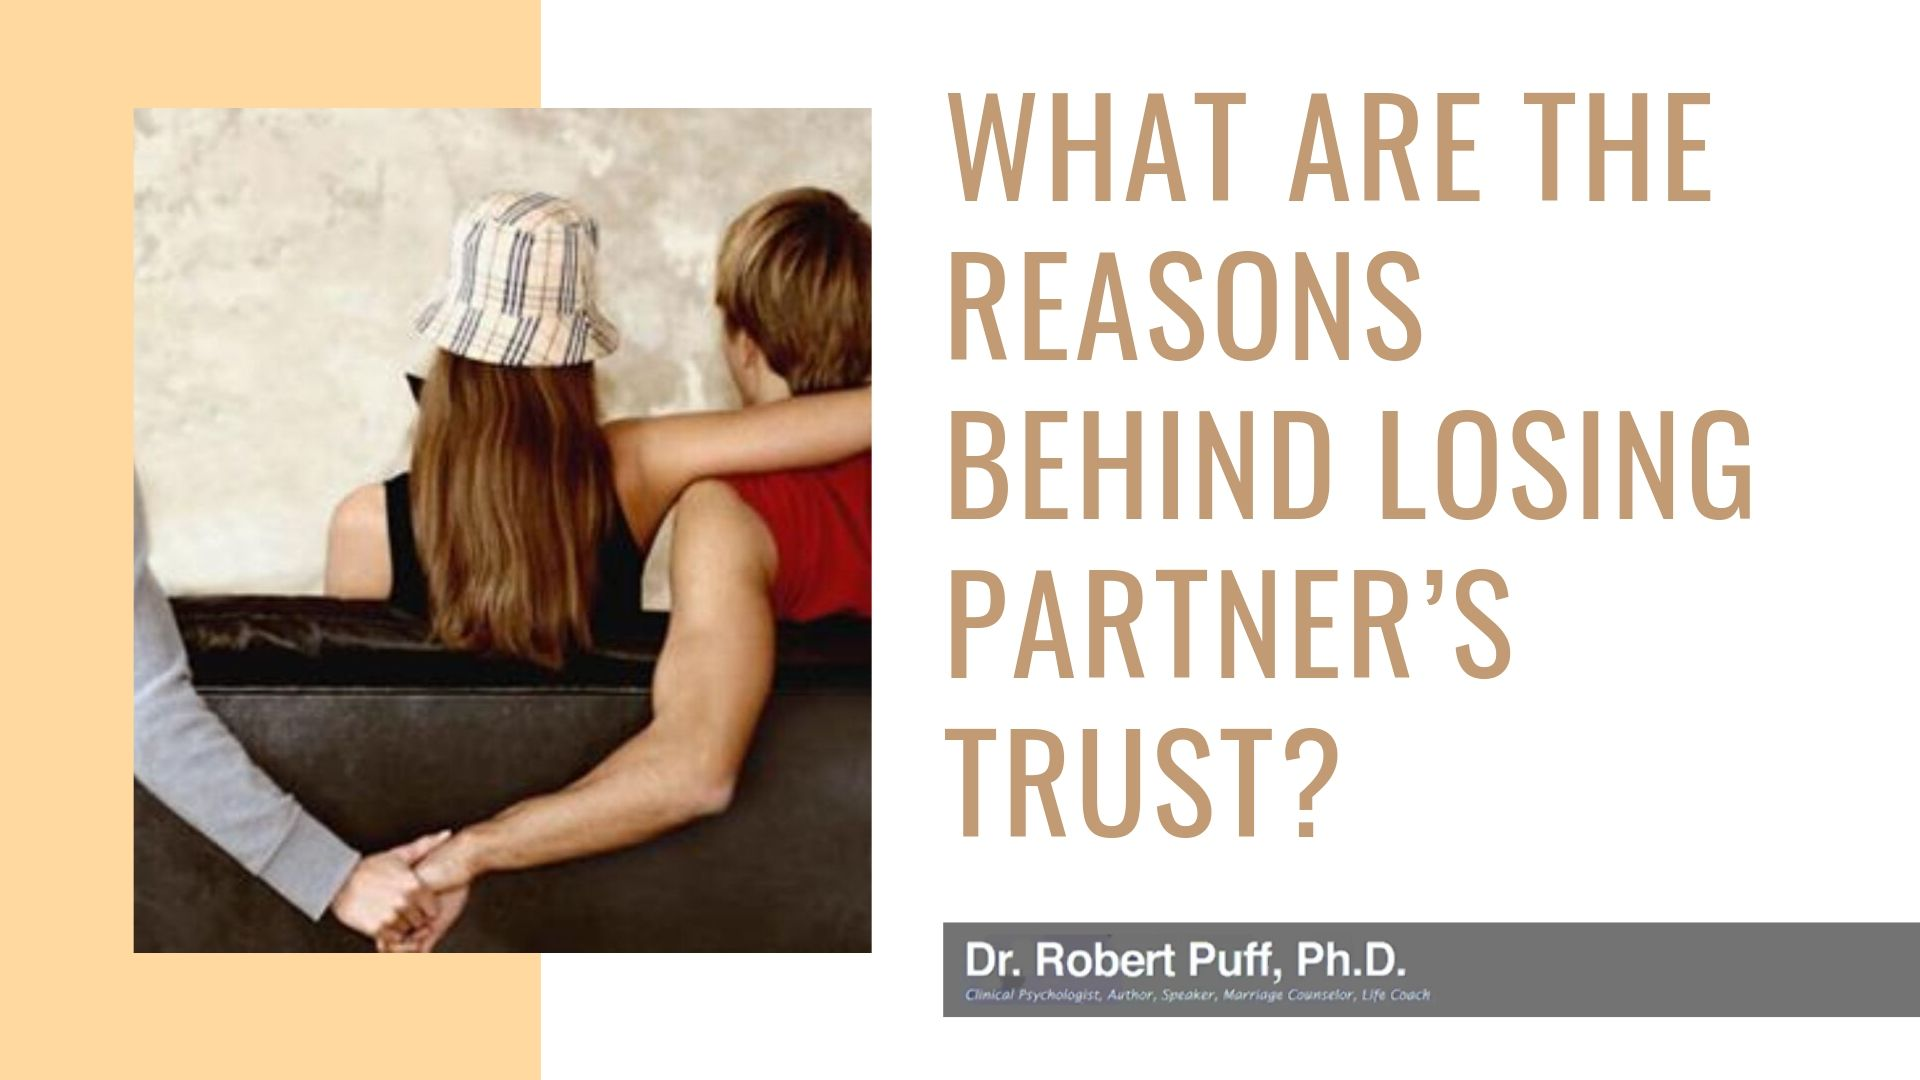 What Are The Reasons Behind Losing Partner's Trust